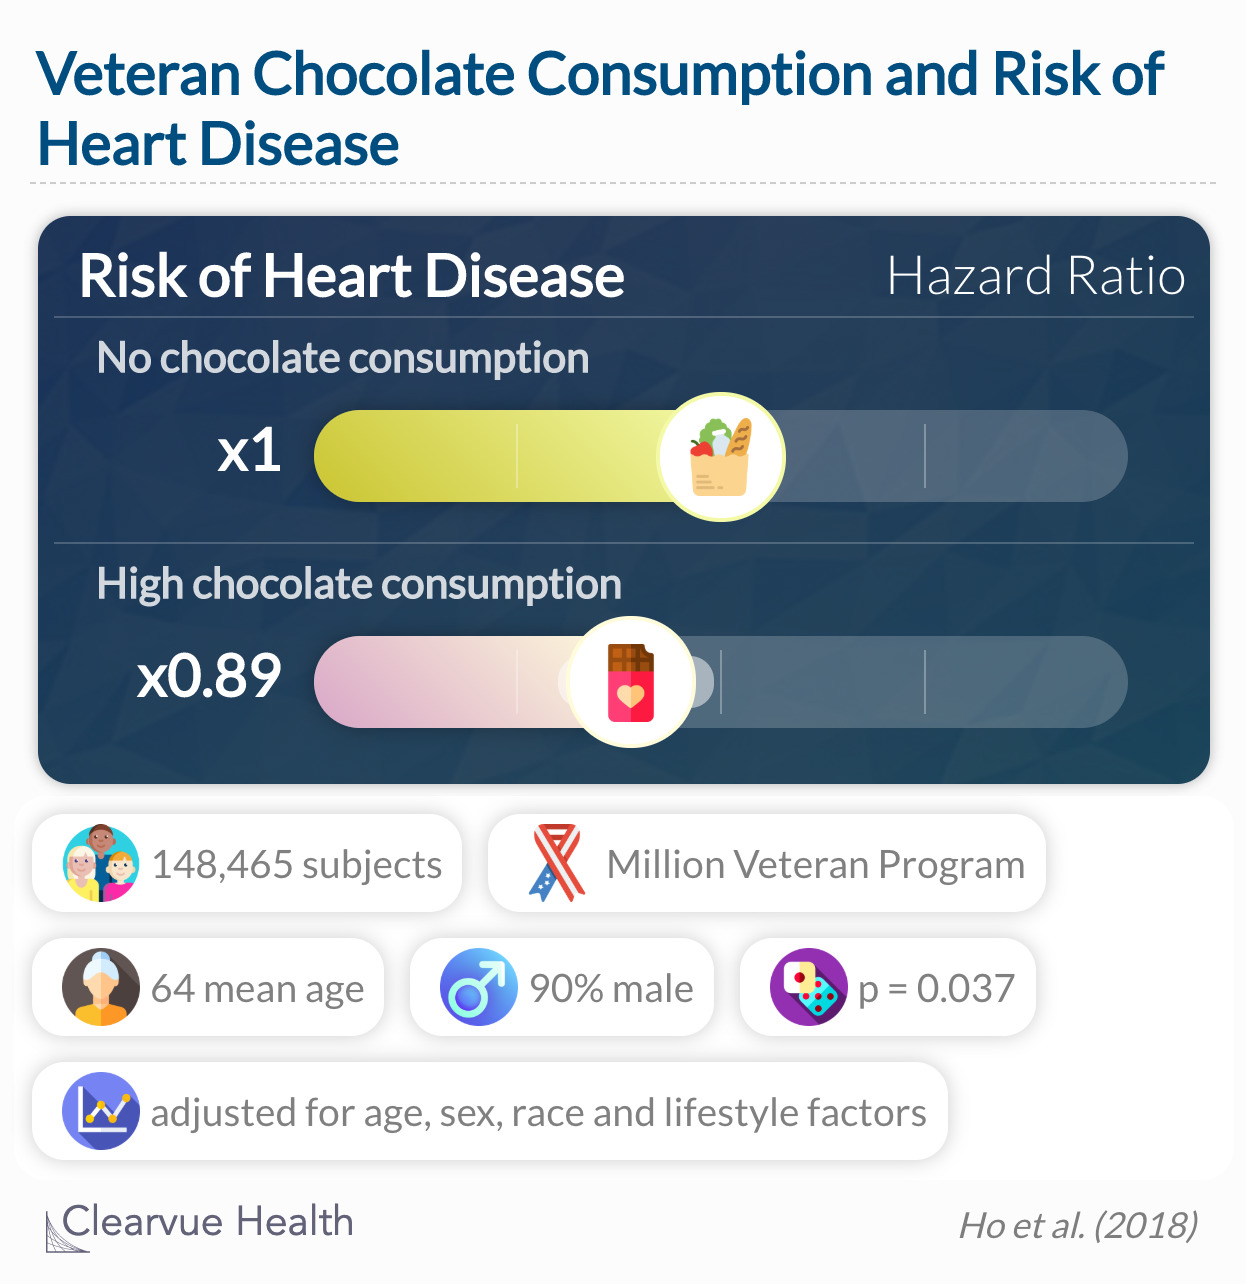 Our data suggest that regular chocolate consumption is associated with a lower risk of CAD among US Veterans.